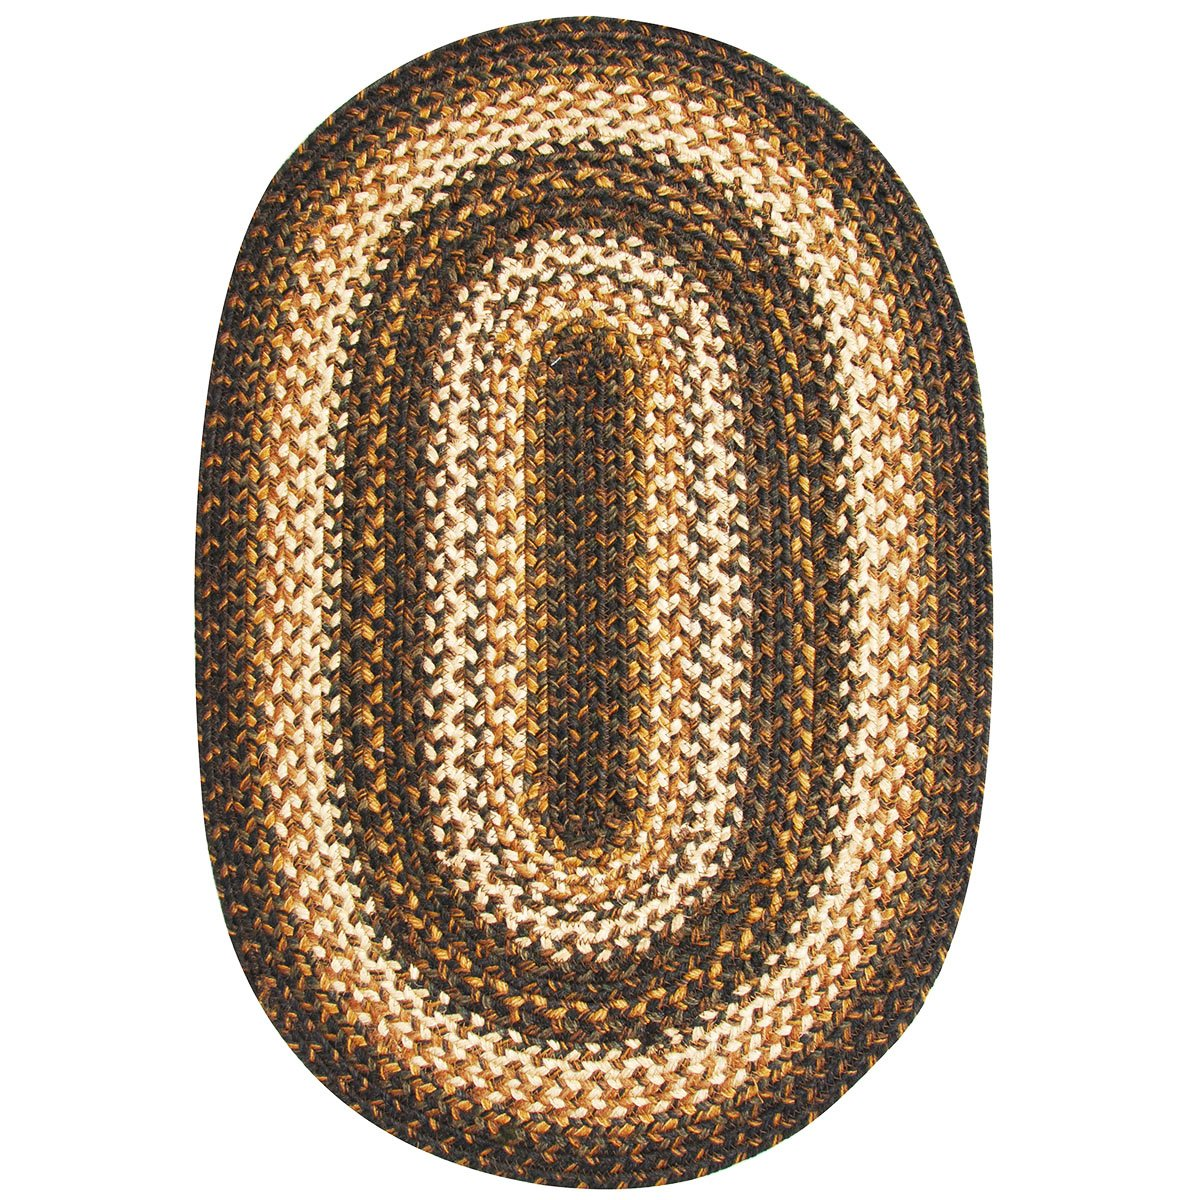 Homespice Oval Jute Braided Rugs, 4-Feet by 6-Feet, Russet Homespice Decor -- DROPSHIP 801063503046